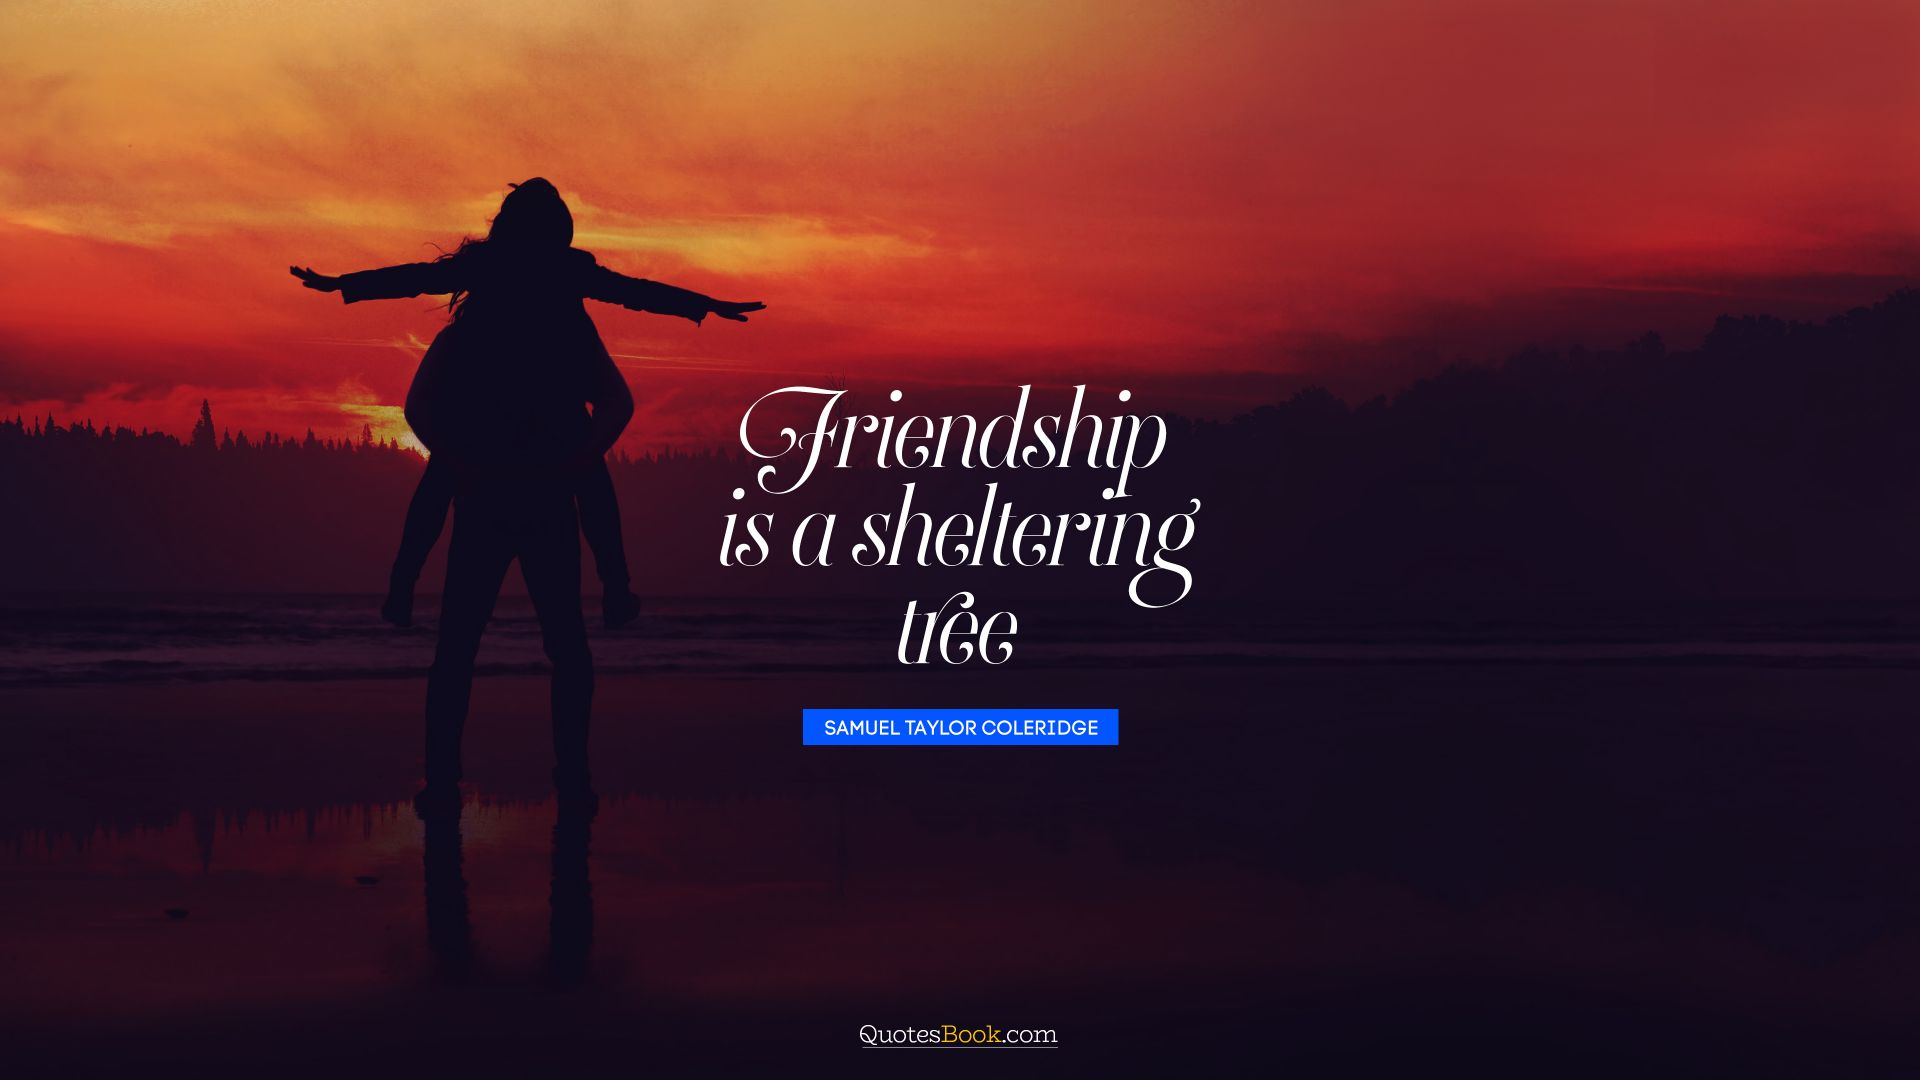 Friendship is a sheltering tree. - Quote by Samuel Taylor Coleridge